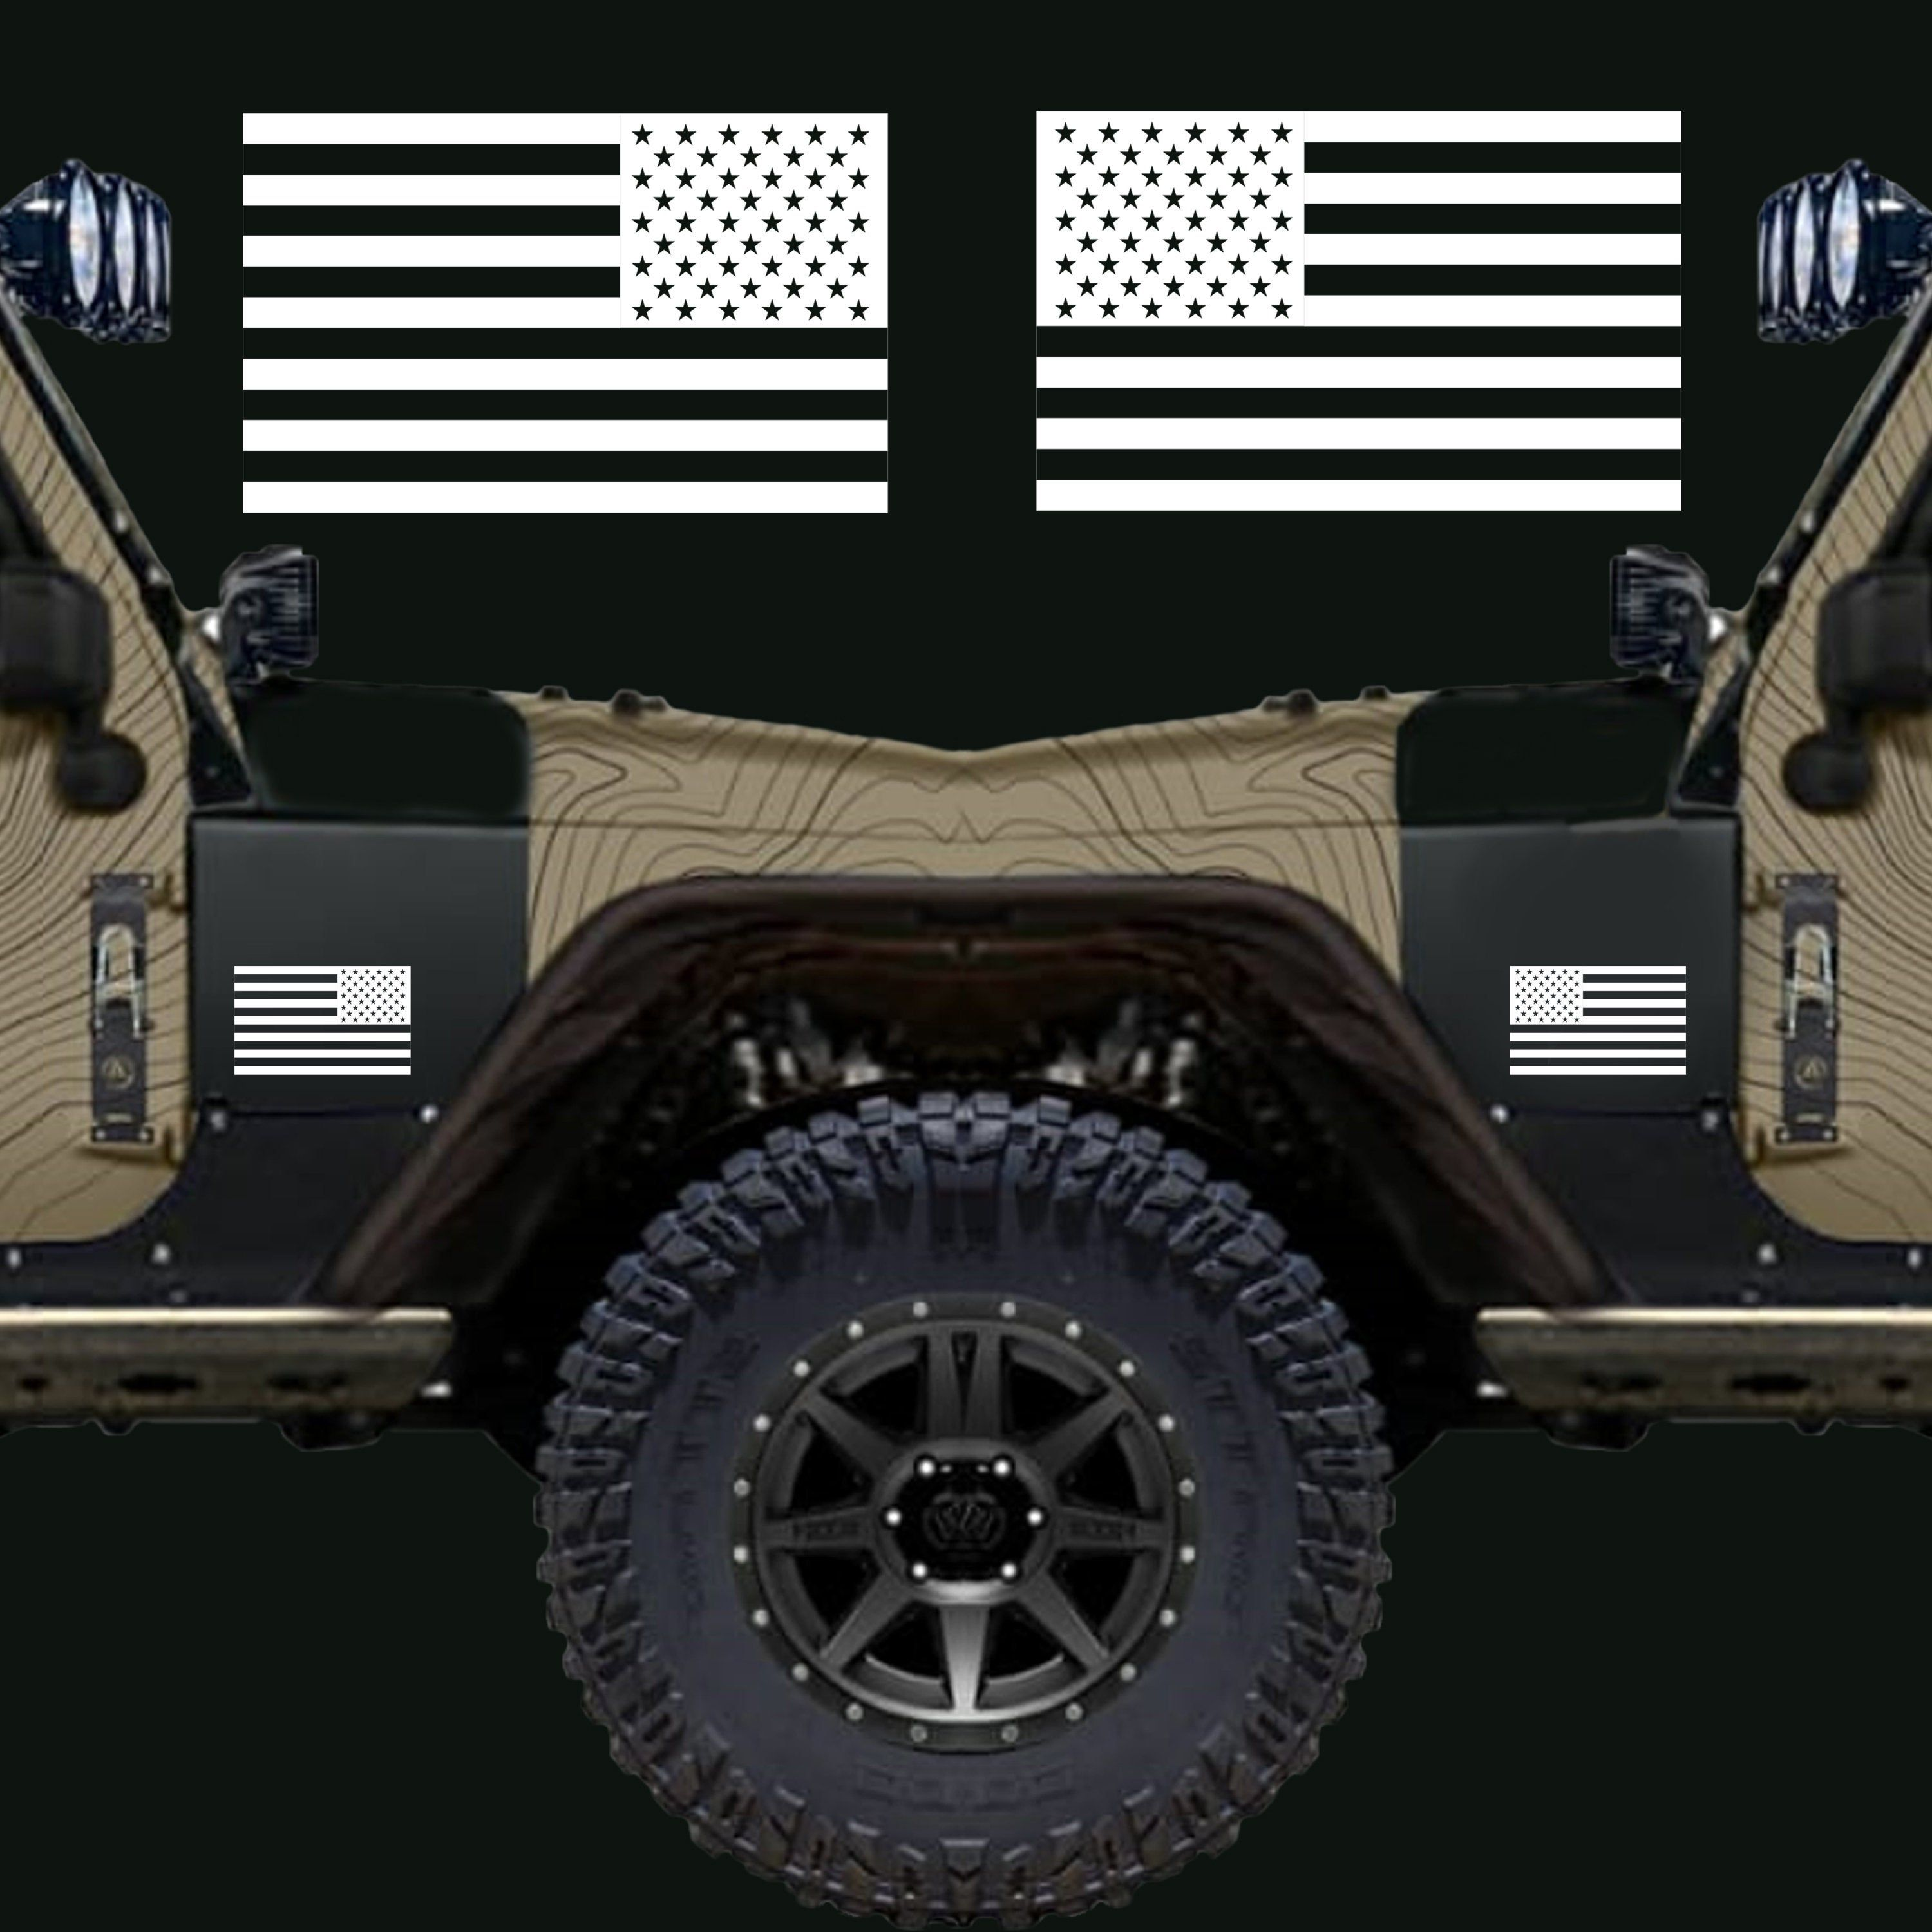 American Flag Subdued Tactical 5 X 3 High Quality Vinyl Decal Sticker Pair 1 Original And 1 Flipped Version American Flag Decal Flag Decal High Quality Vinyl [ 3000 x 3000 Pixel ]